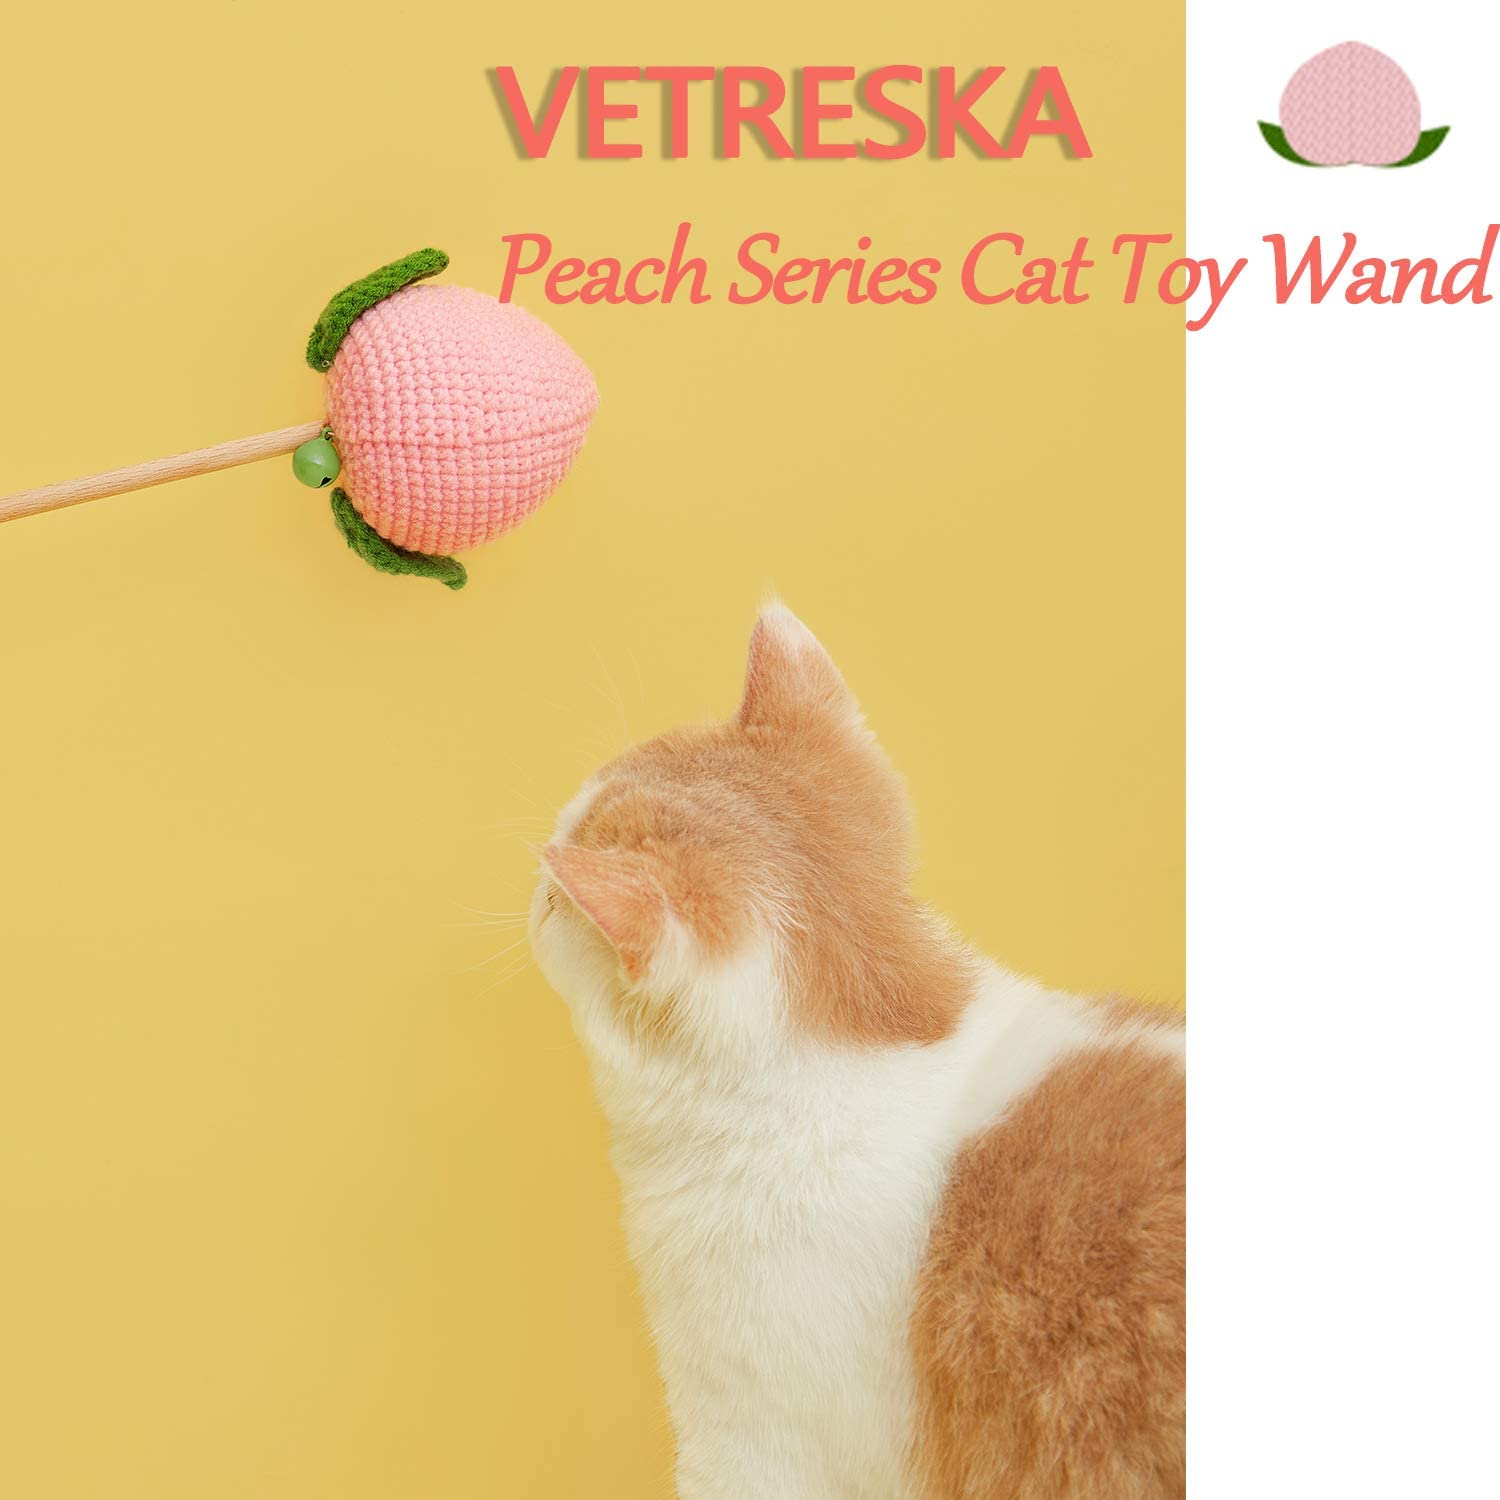 Vetreska Peach Cat Wand - Catoro Cat Cafe